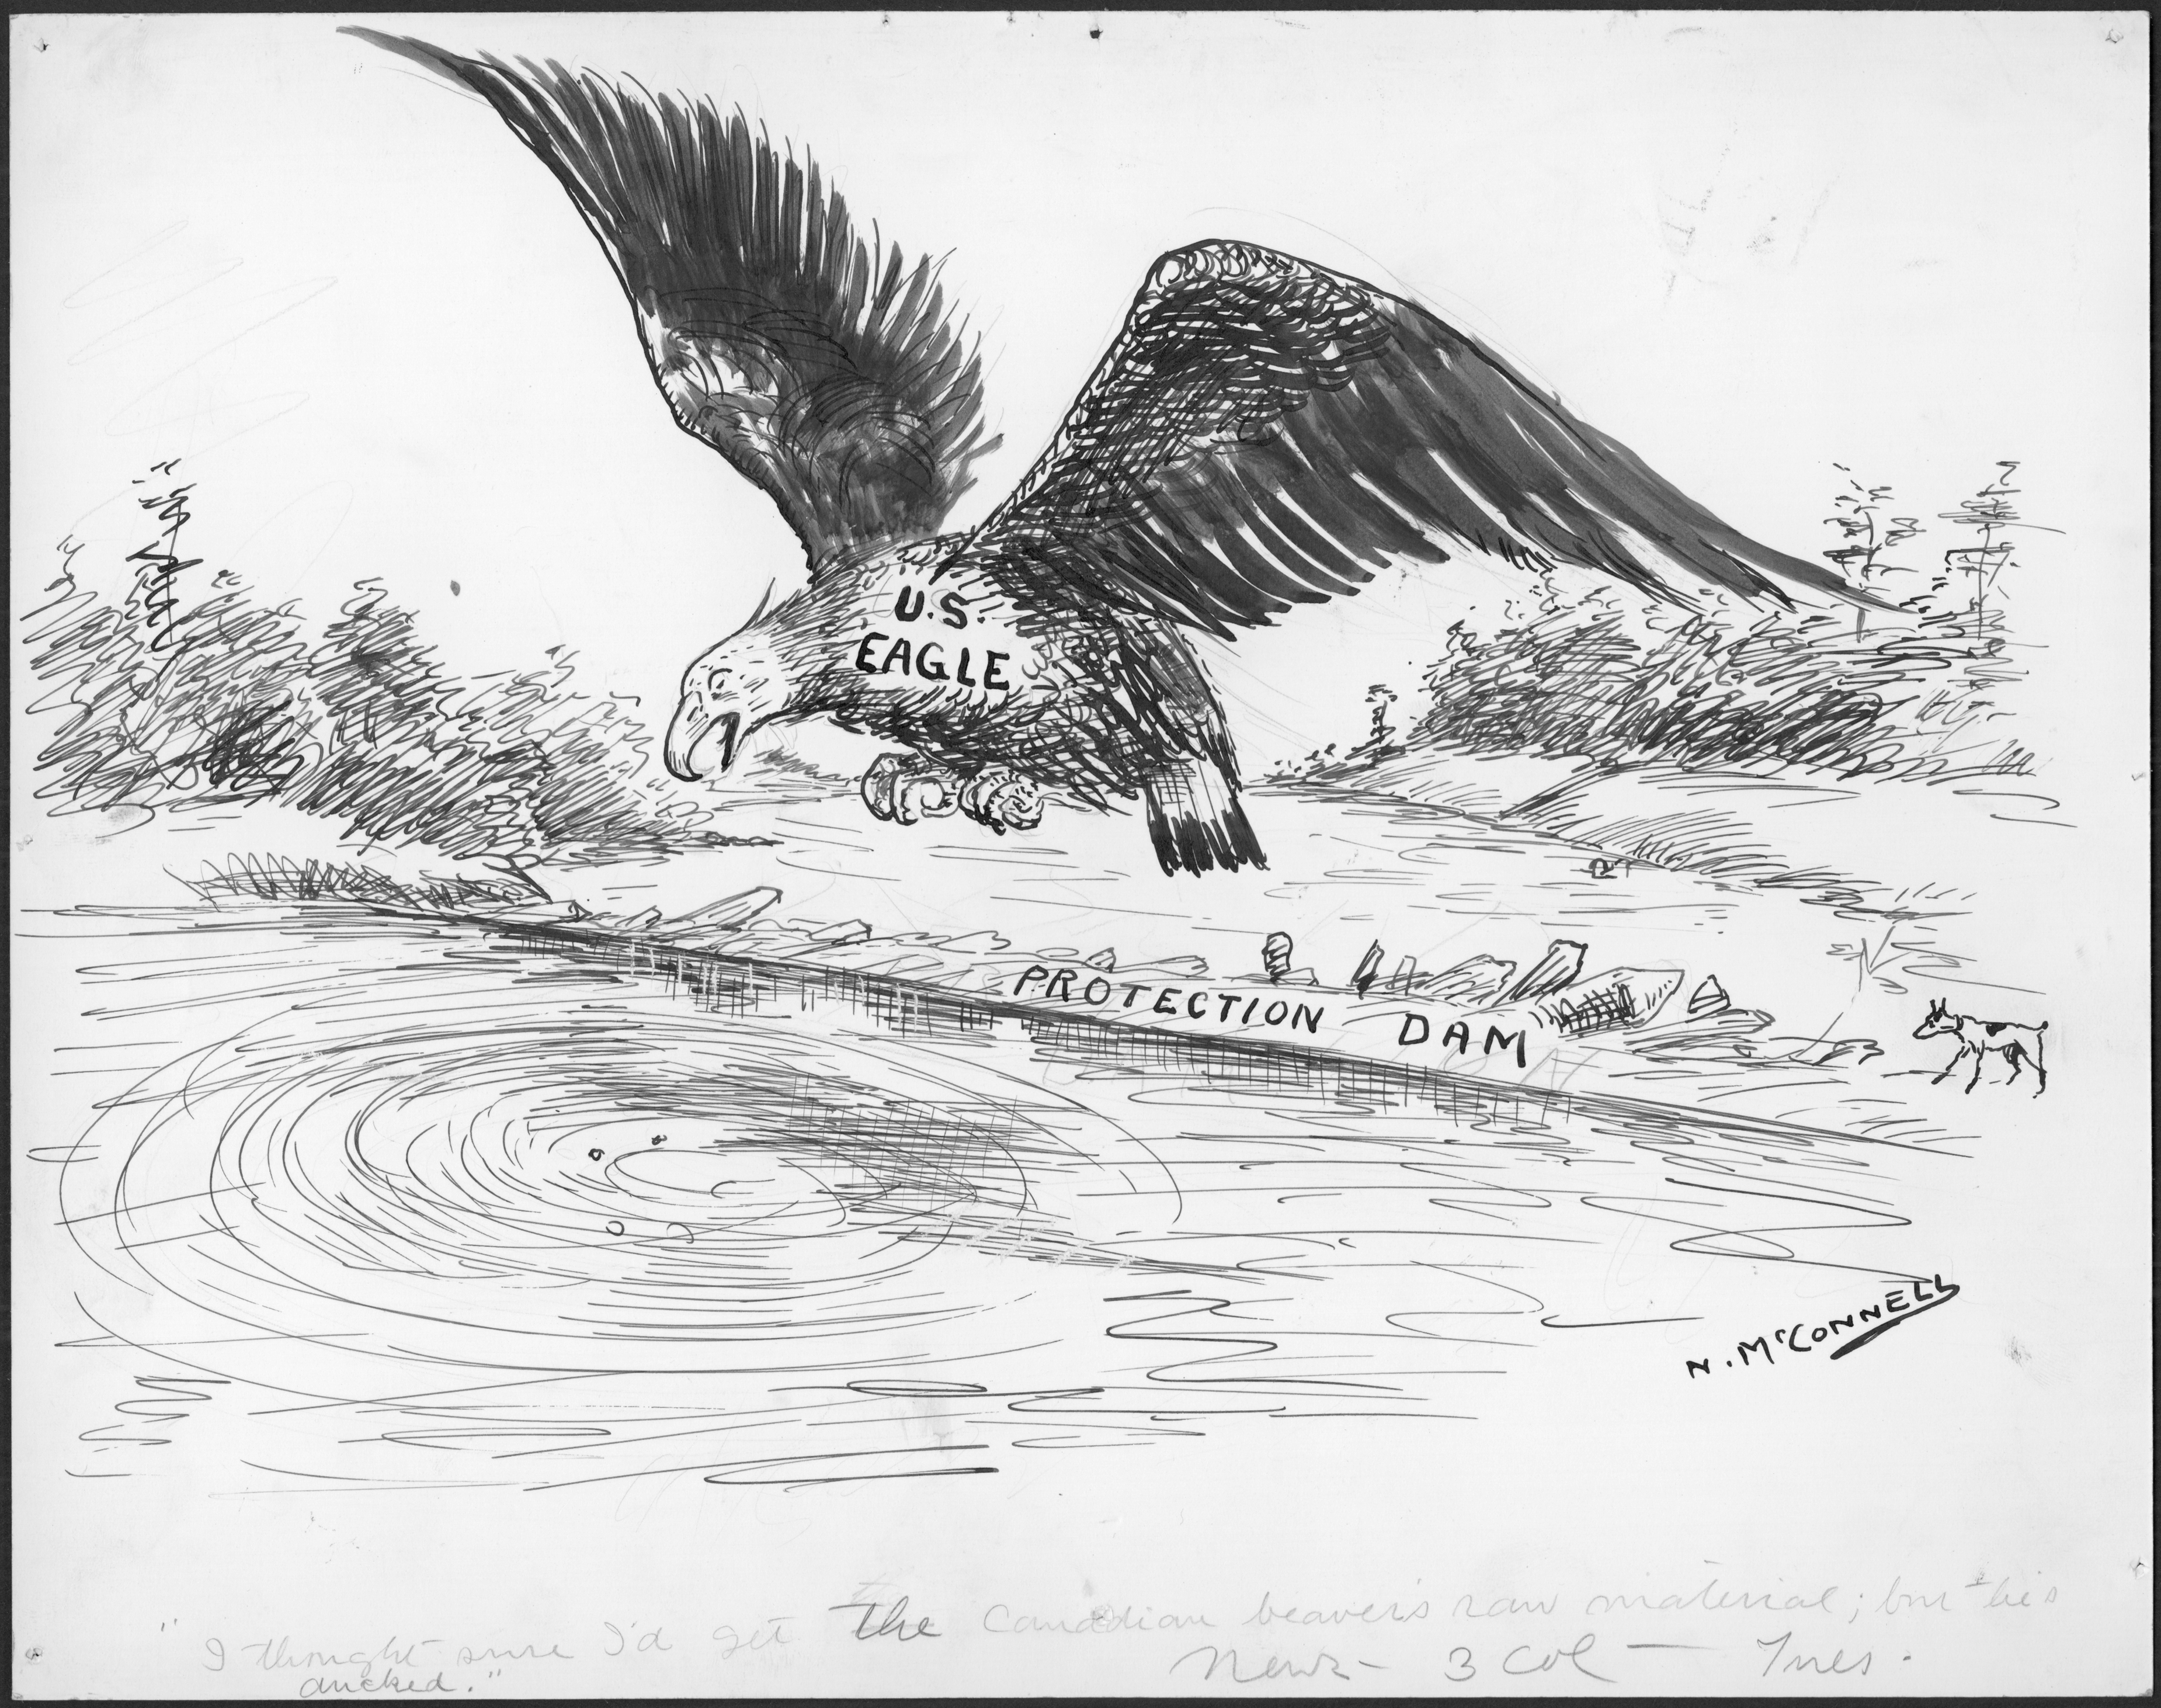 """An eagle hunts for a beaver Soaring above a beaver pond, shored up by a beaver """"PROTECTION DAM,"""" a """"U.S. EAGLE"""" looks for the beaver it was hunting, wings outstretched, with a look of astonishment on its face. Below in the water, ripples on the pond suggest something has dove below the surface."""